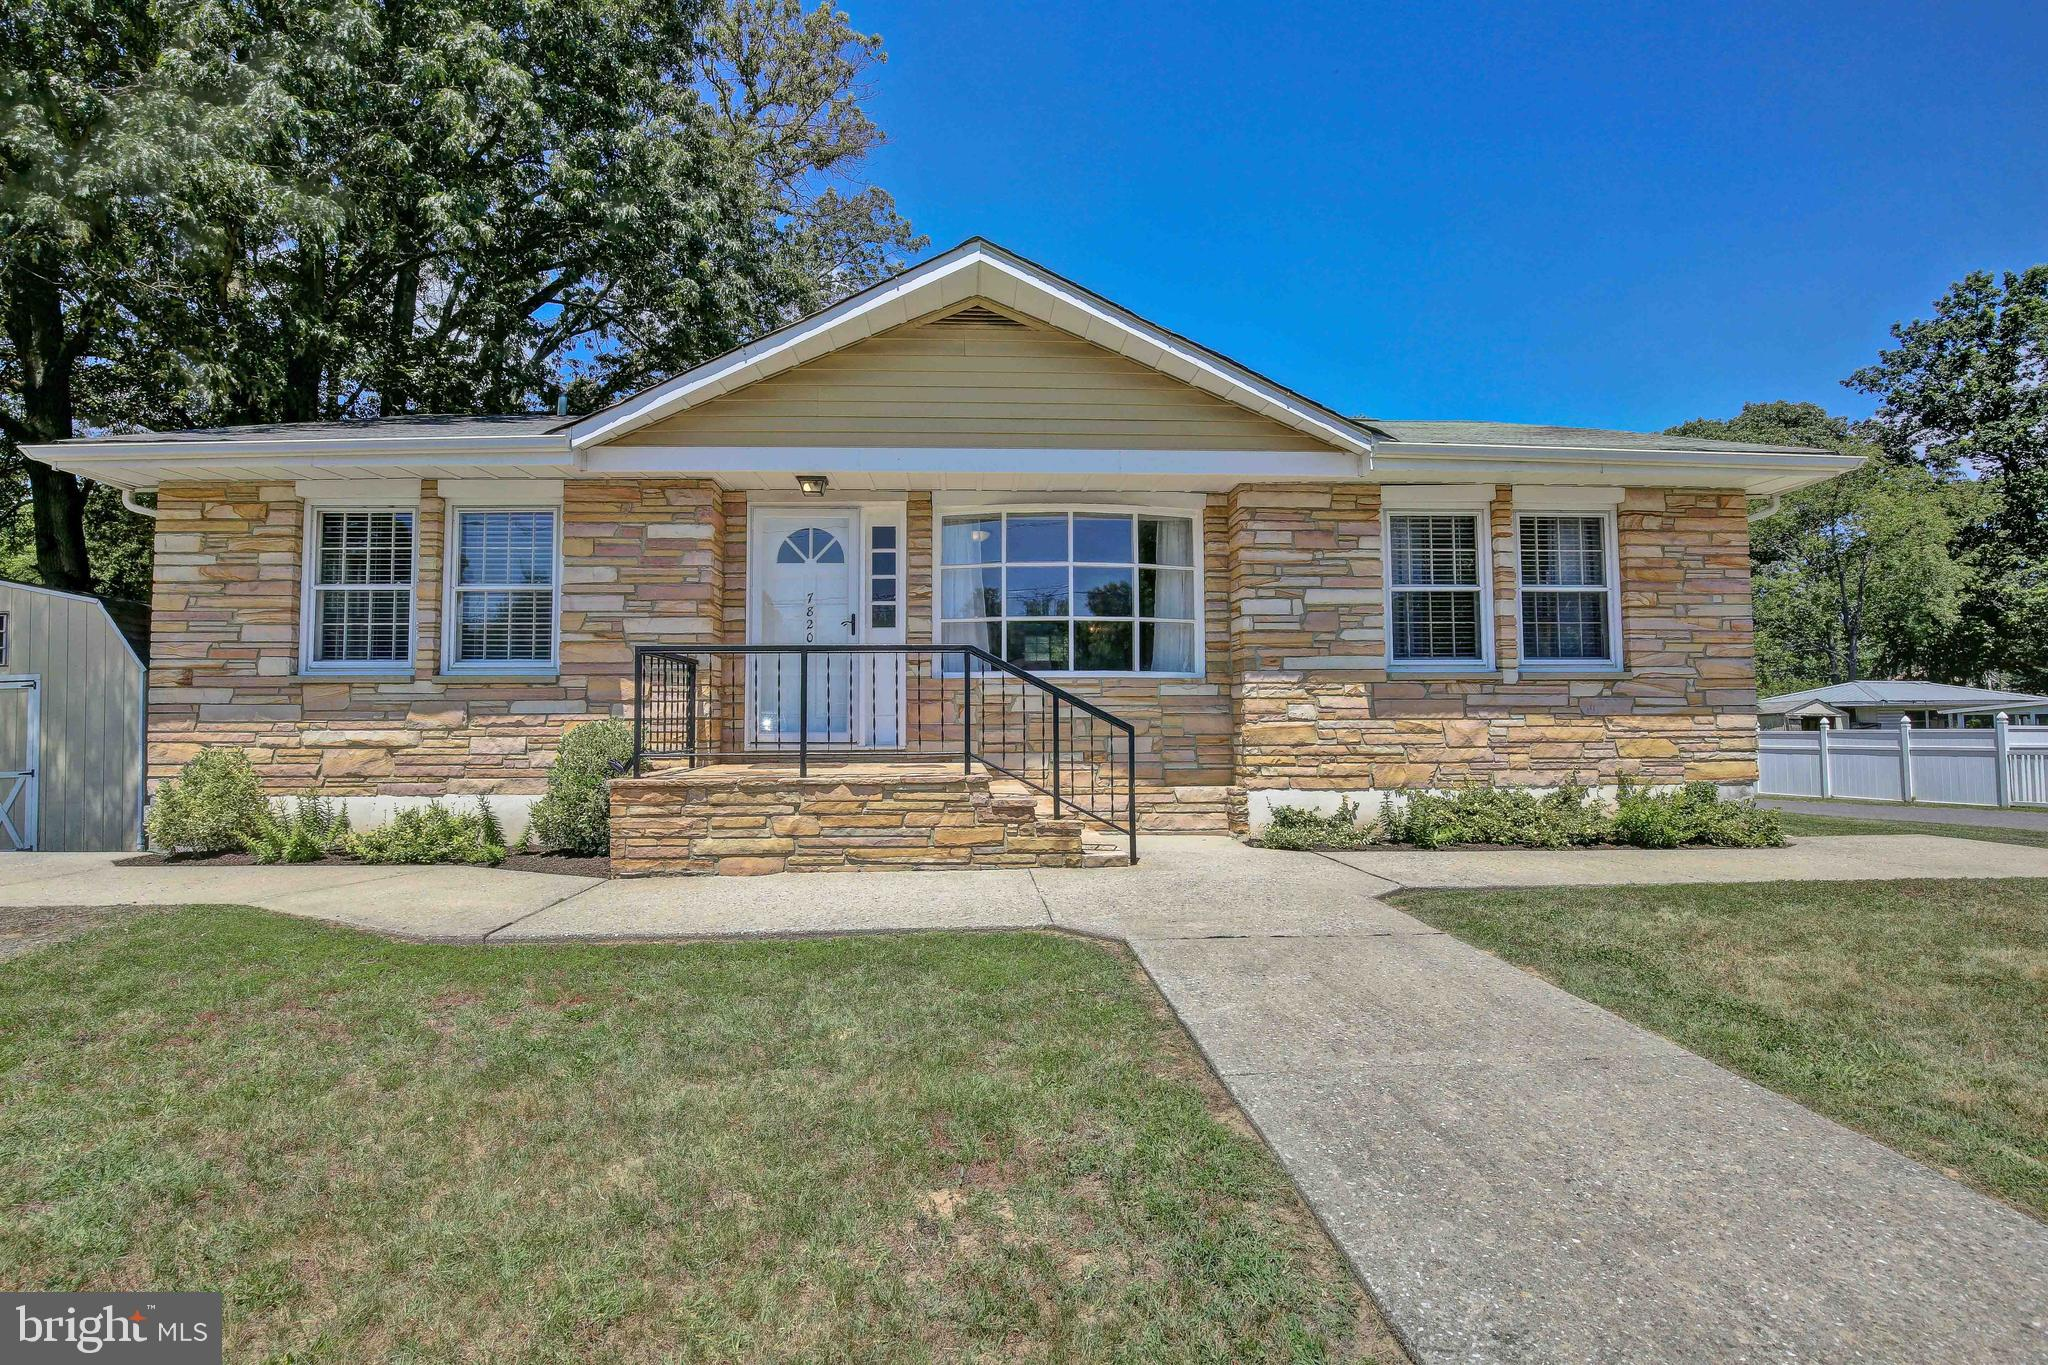 Three bedroom, one bathroom rancher with lots of natural light! Hardwood floors, stainless steel app